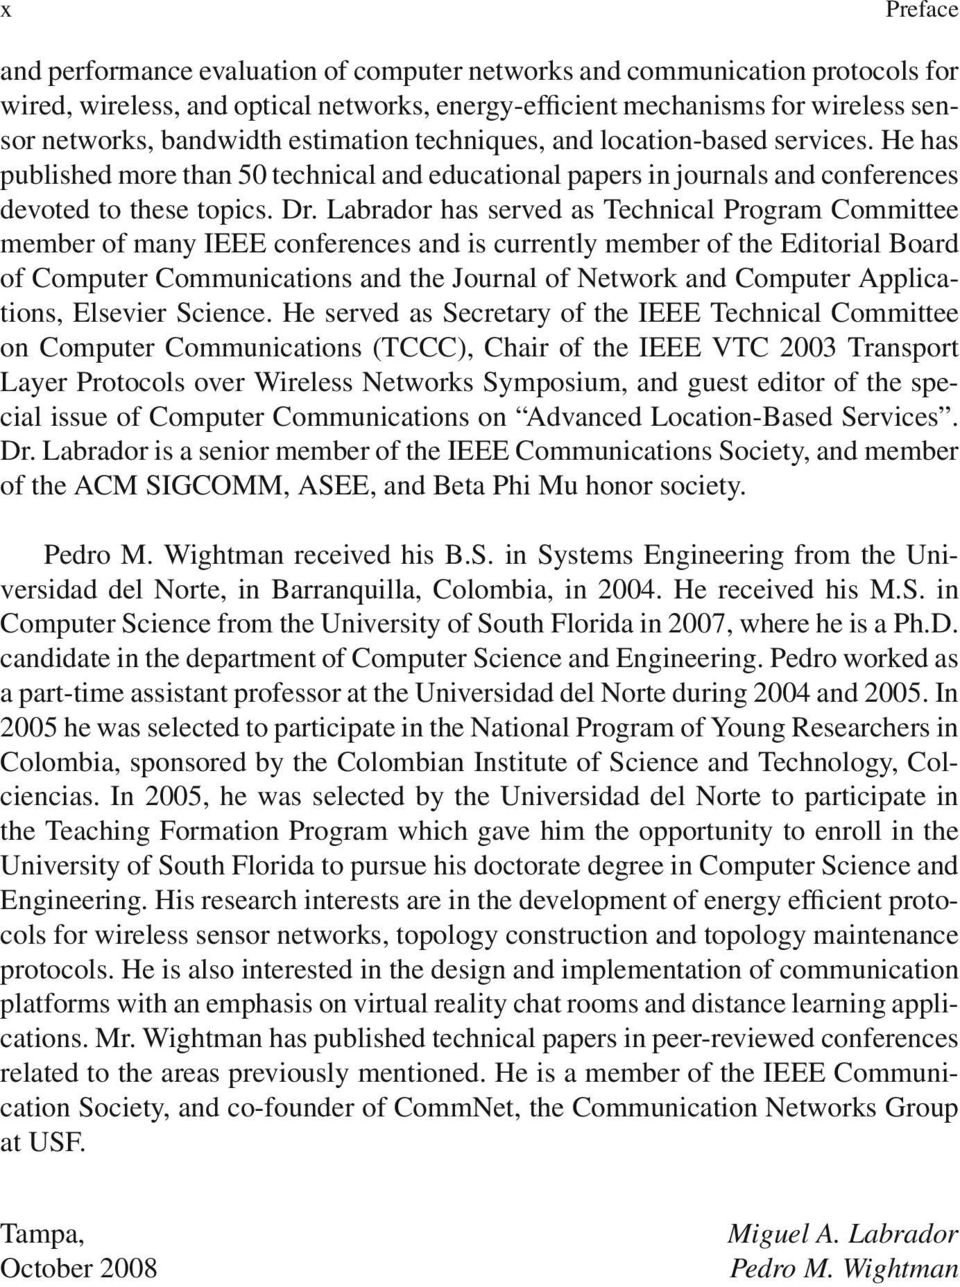 Labrador has served as Technical Program Committee member of many IEEE conferences and is currently member of the Editorial Board of Computer Communications and the Journal of Network and Computer